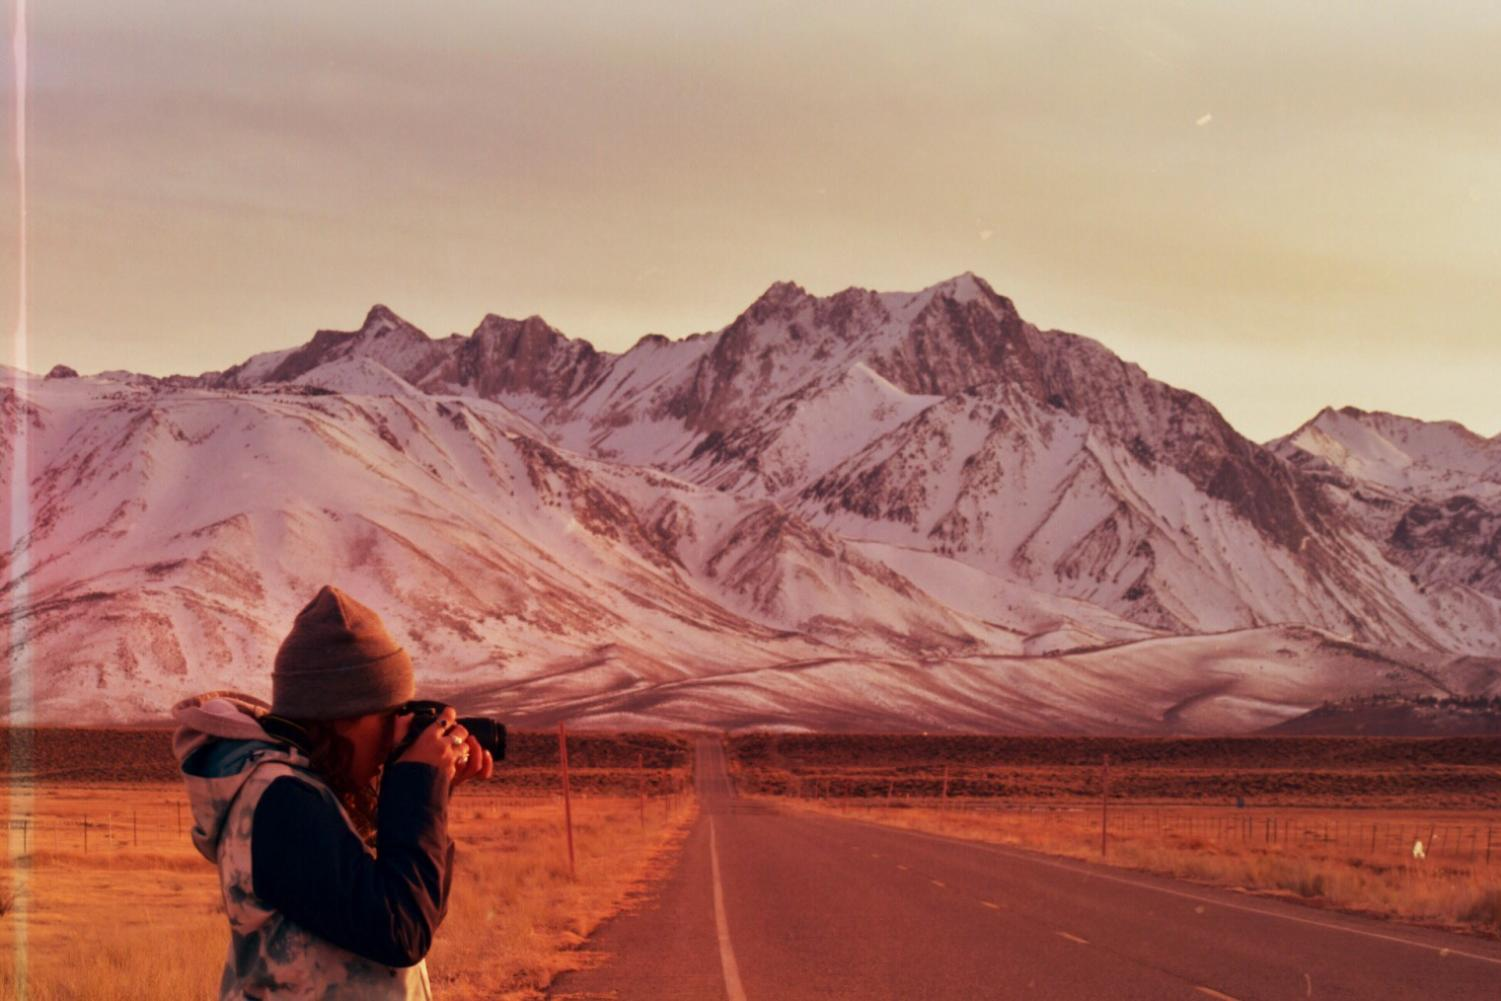 Shooting photos of the Minarets and Mammoth Mountain.